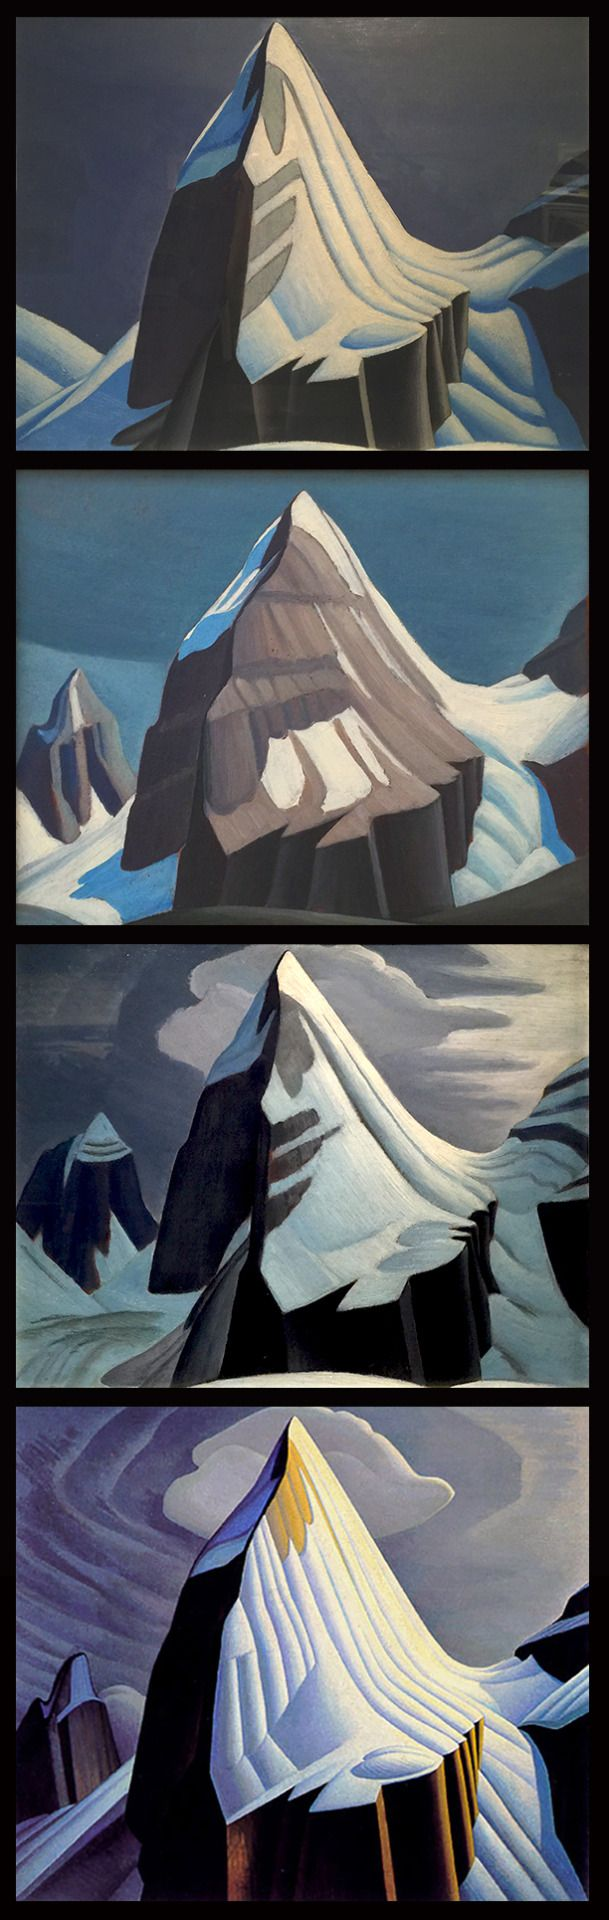 I was very interested to see the similarities and the differences in the studies and then the final work for Mr. Lawren Harris's masterwork of Mt. Lefroy. Three studies first and the final at the bottom. I love them all, but I feel he incorporated...